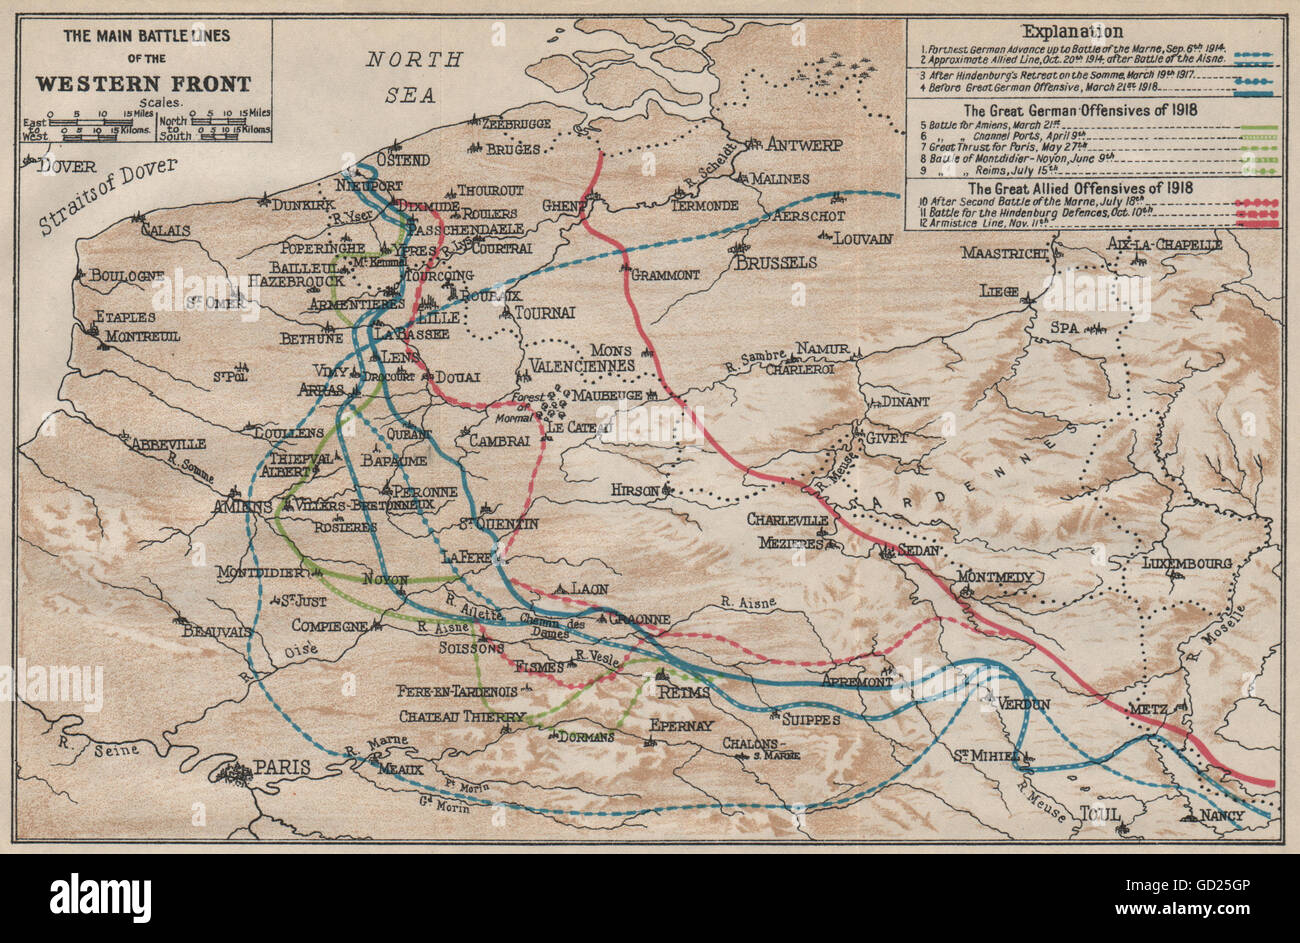 WESTERN FRONT MAIN BATTLE LINES. Vintage map. WW1 First World War. Flanders 1922 - Stock Image